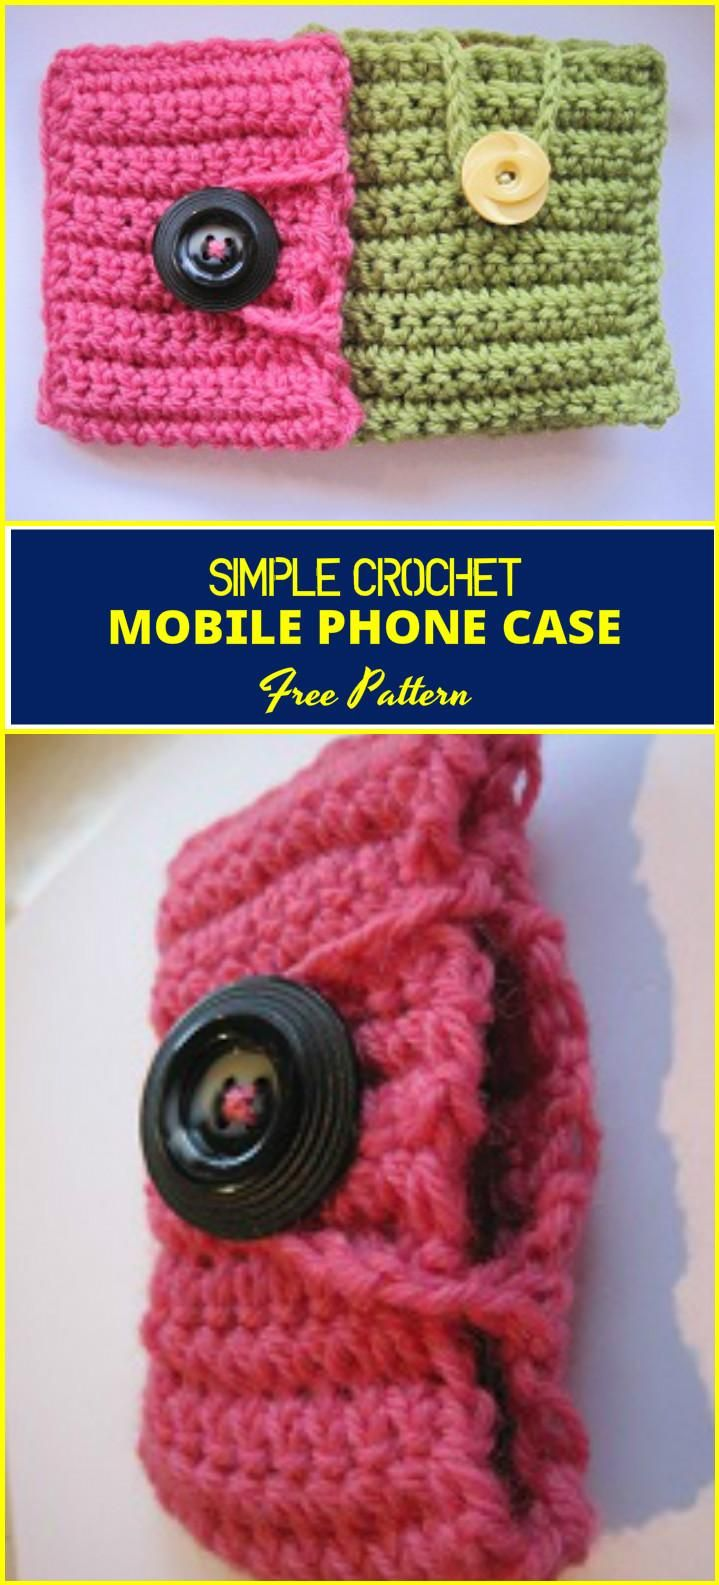 50 Free Crochet Phone Case Patterns - Page 3 of 5 - DIY & Crafts